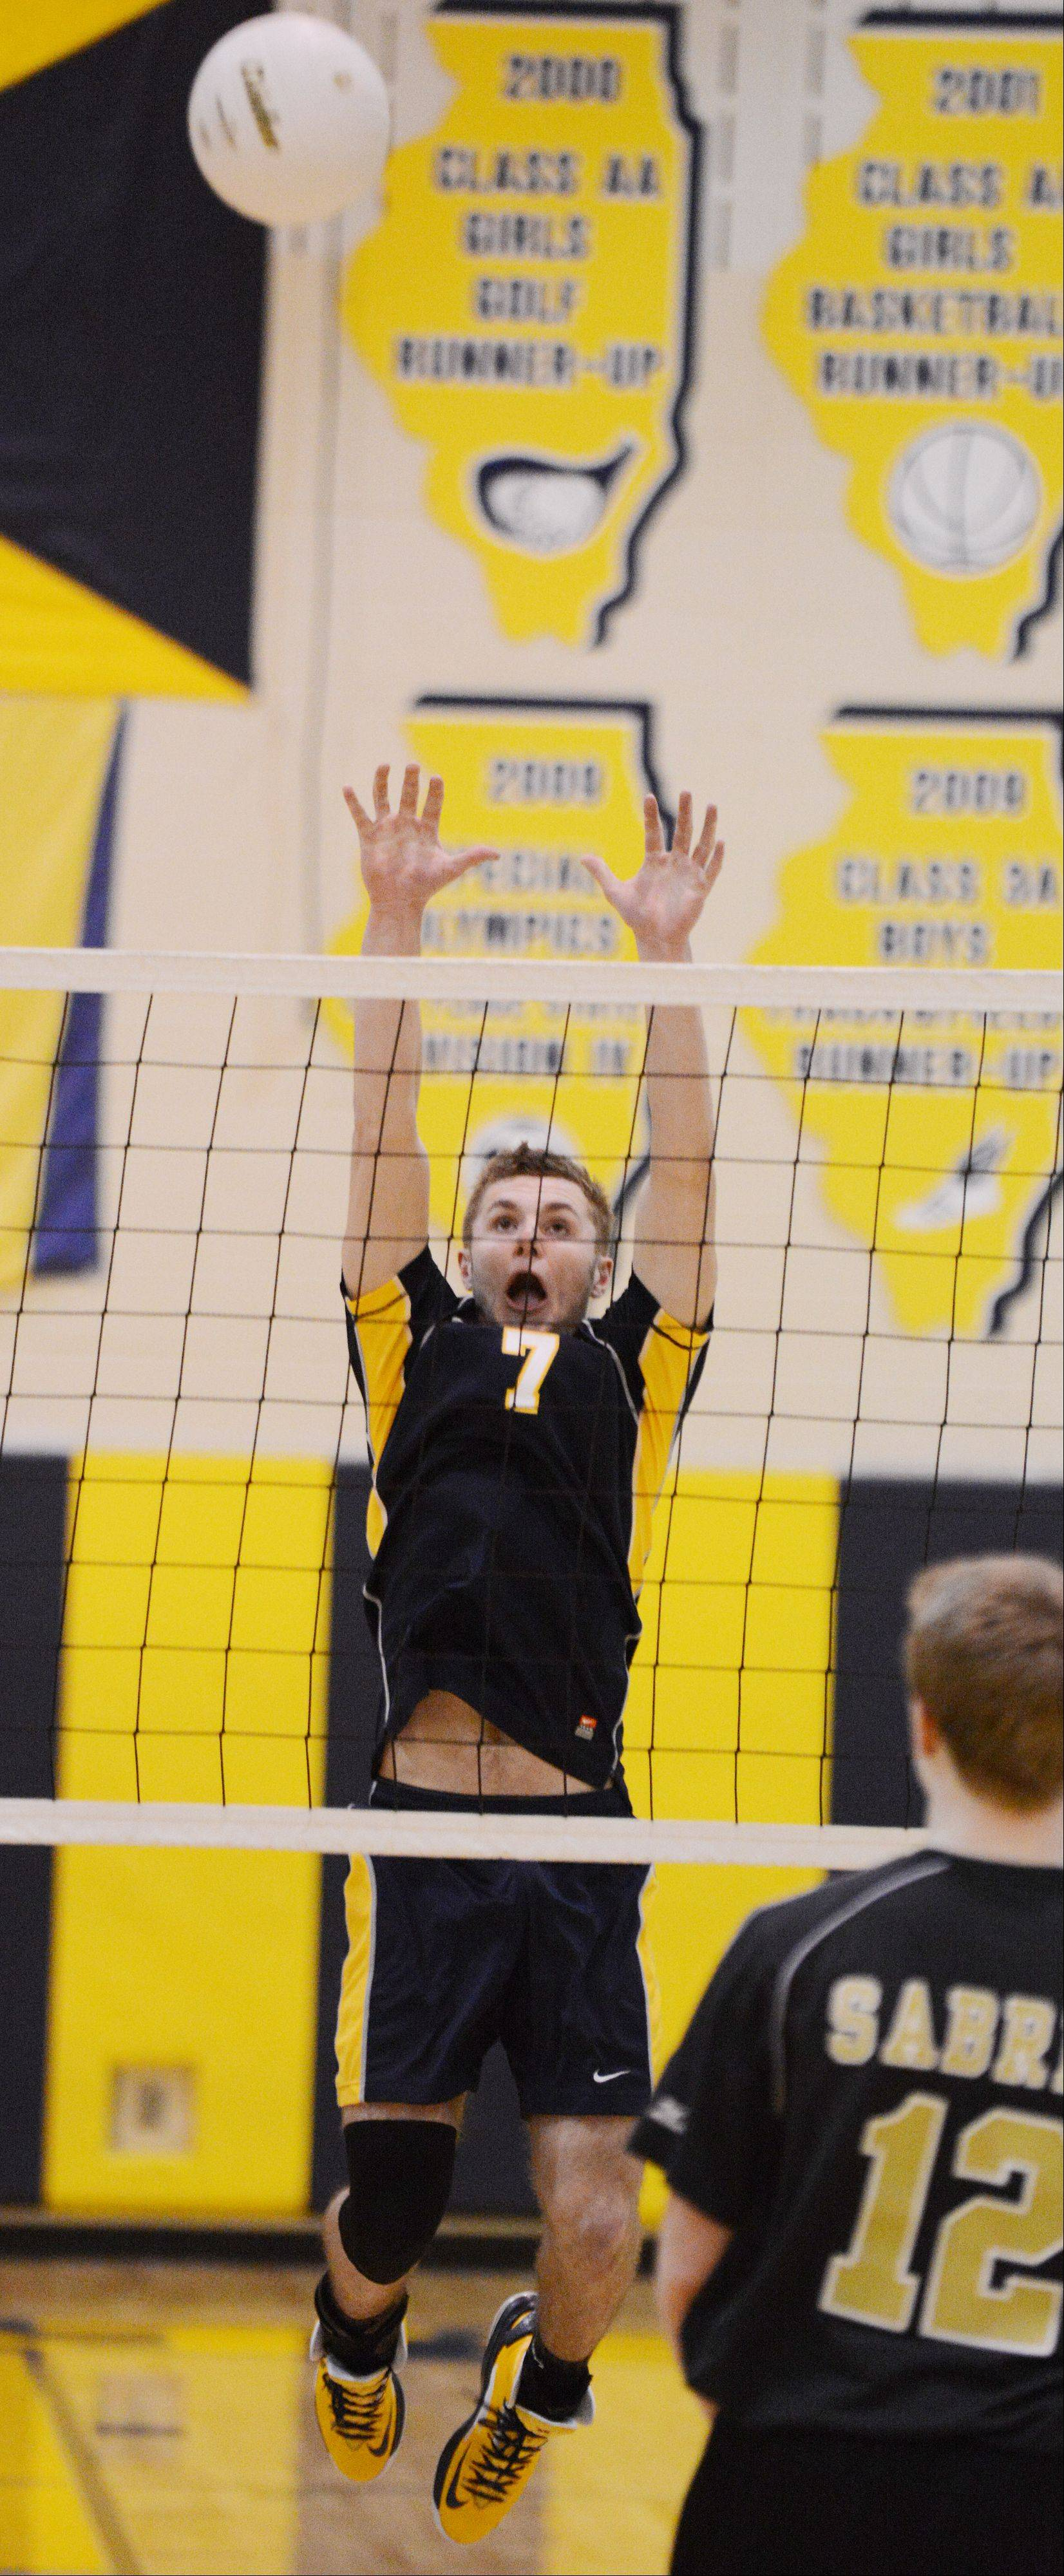 Callahan Rafferty of Neuqua Valley High School goes up for a block during the Streamwood at Neuqua Valley boys volleyball game Tuesday.